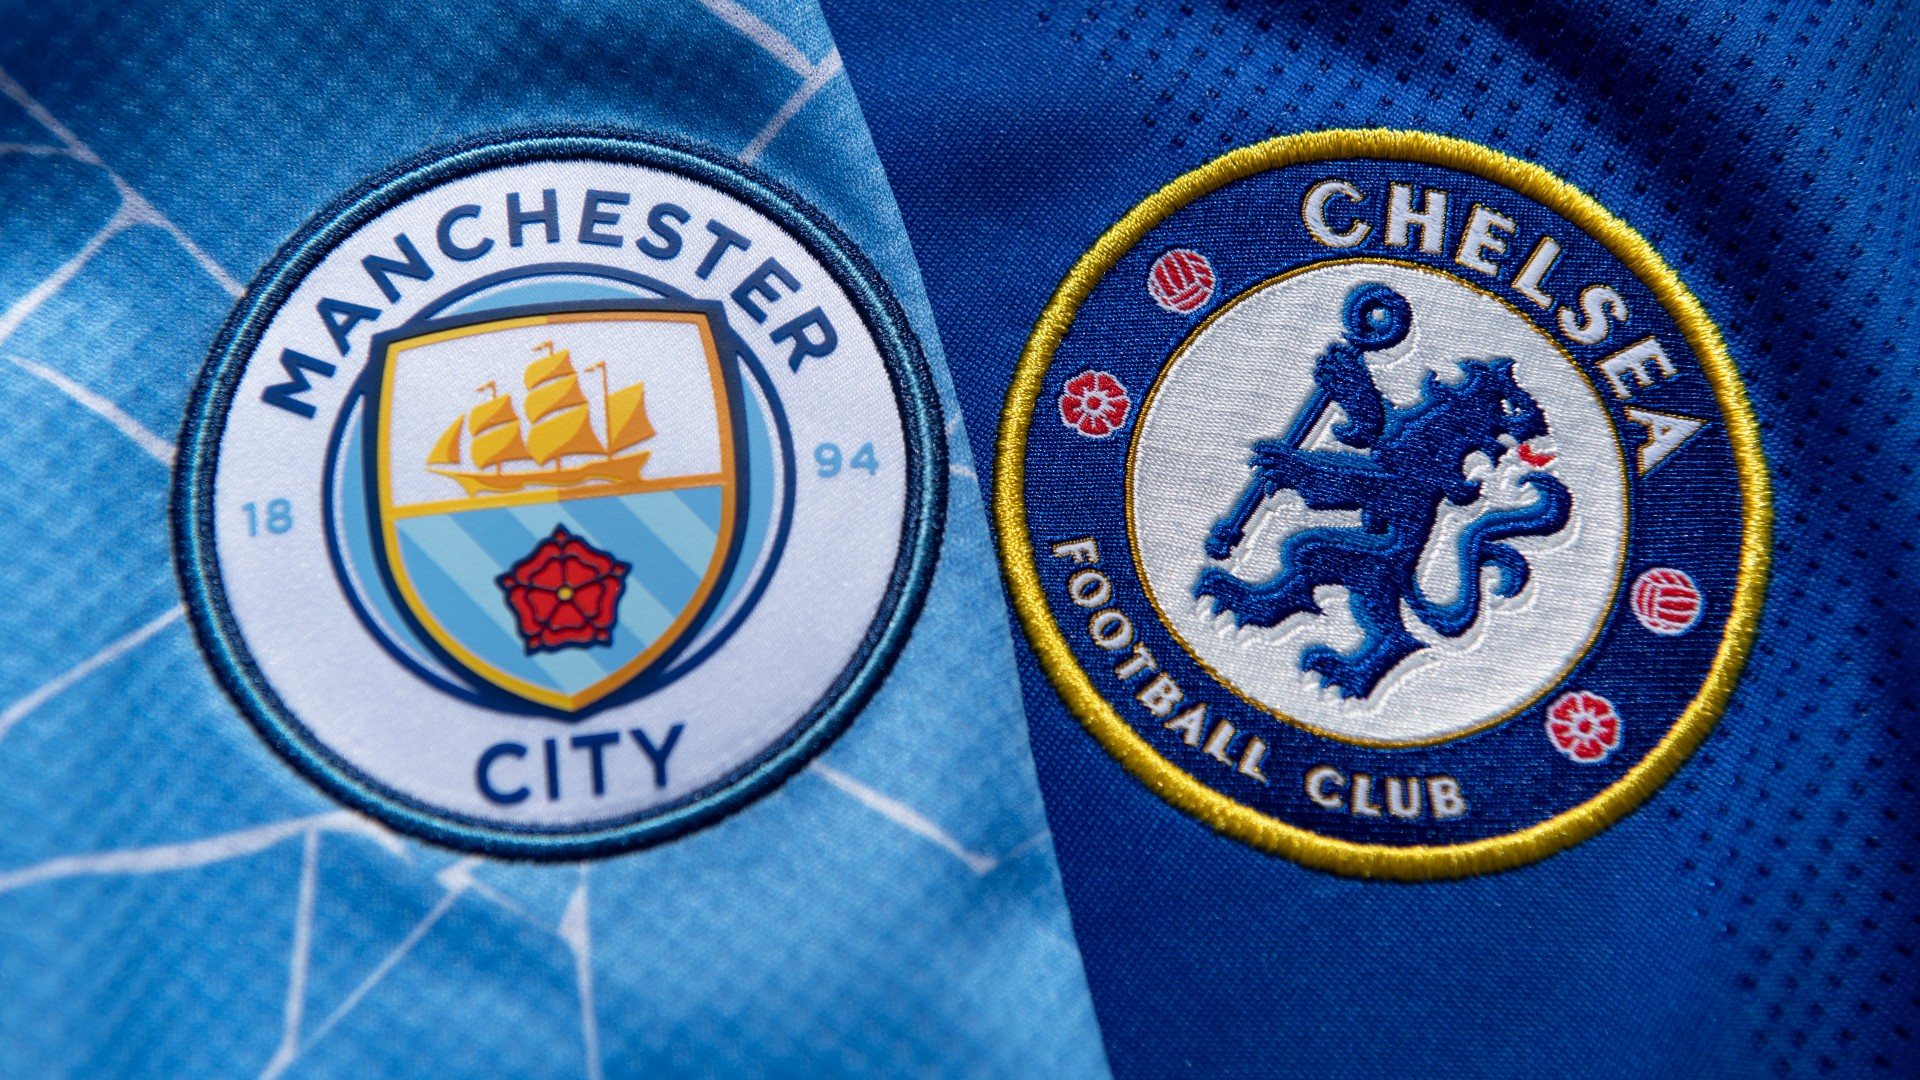 What time does Champions League final start today? TV schedule, live streams for Chelsea vs. Manchester City